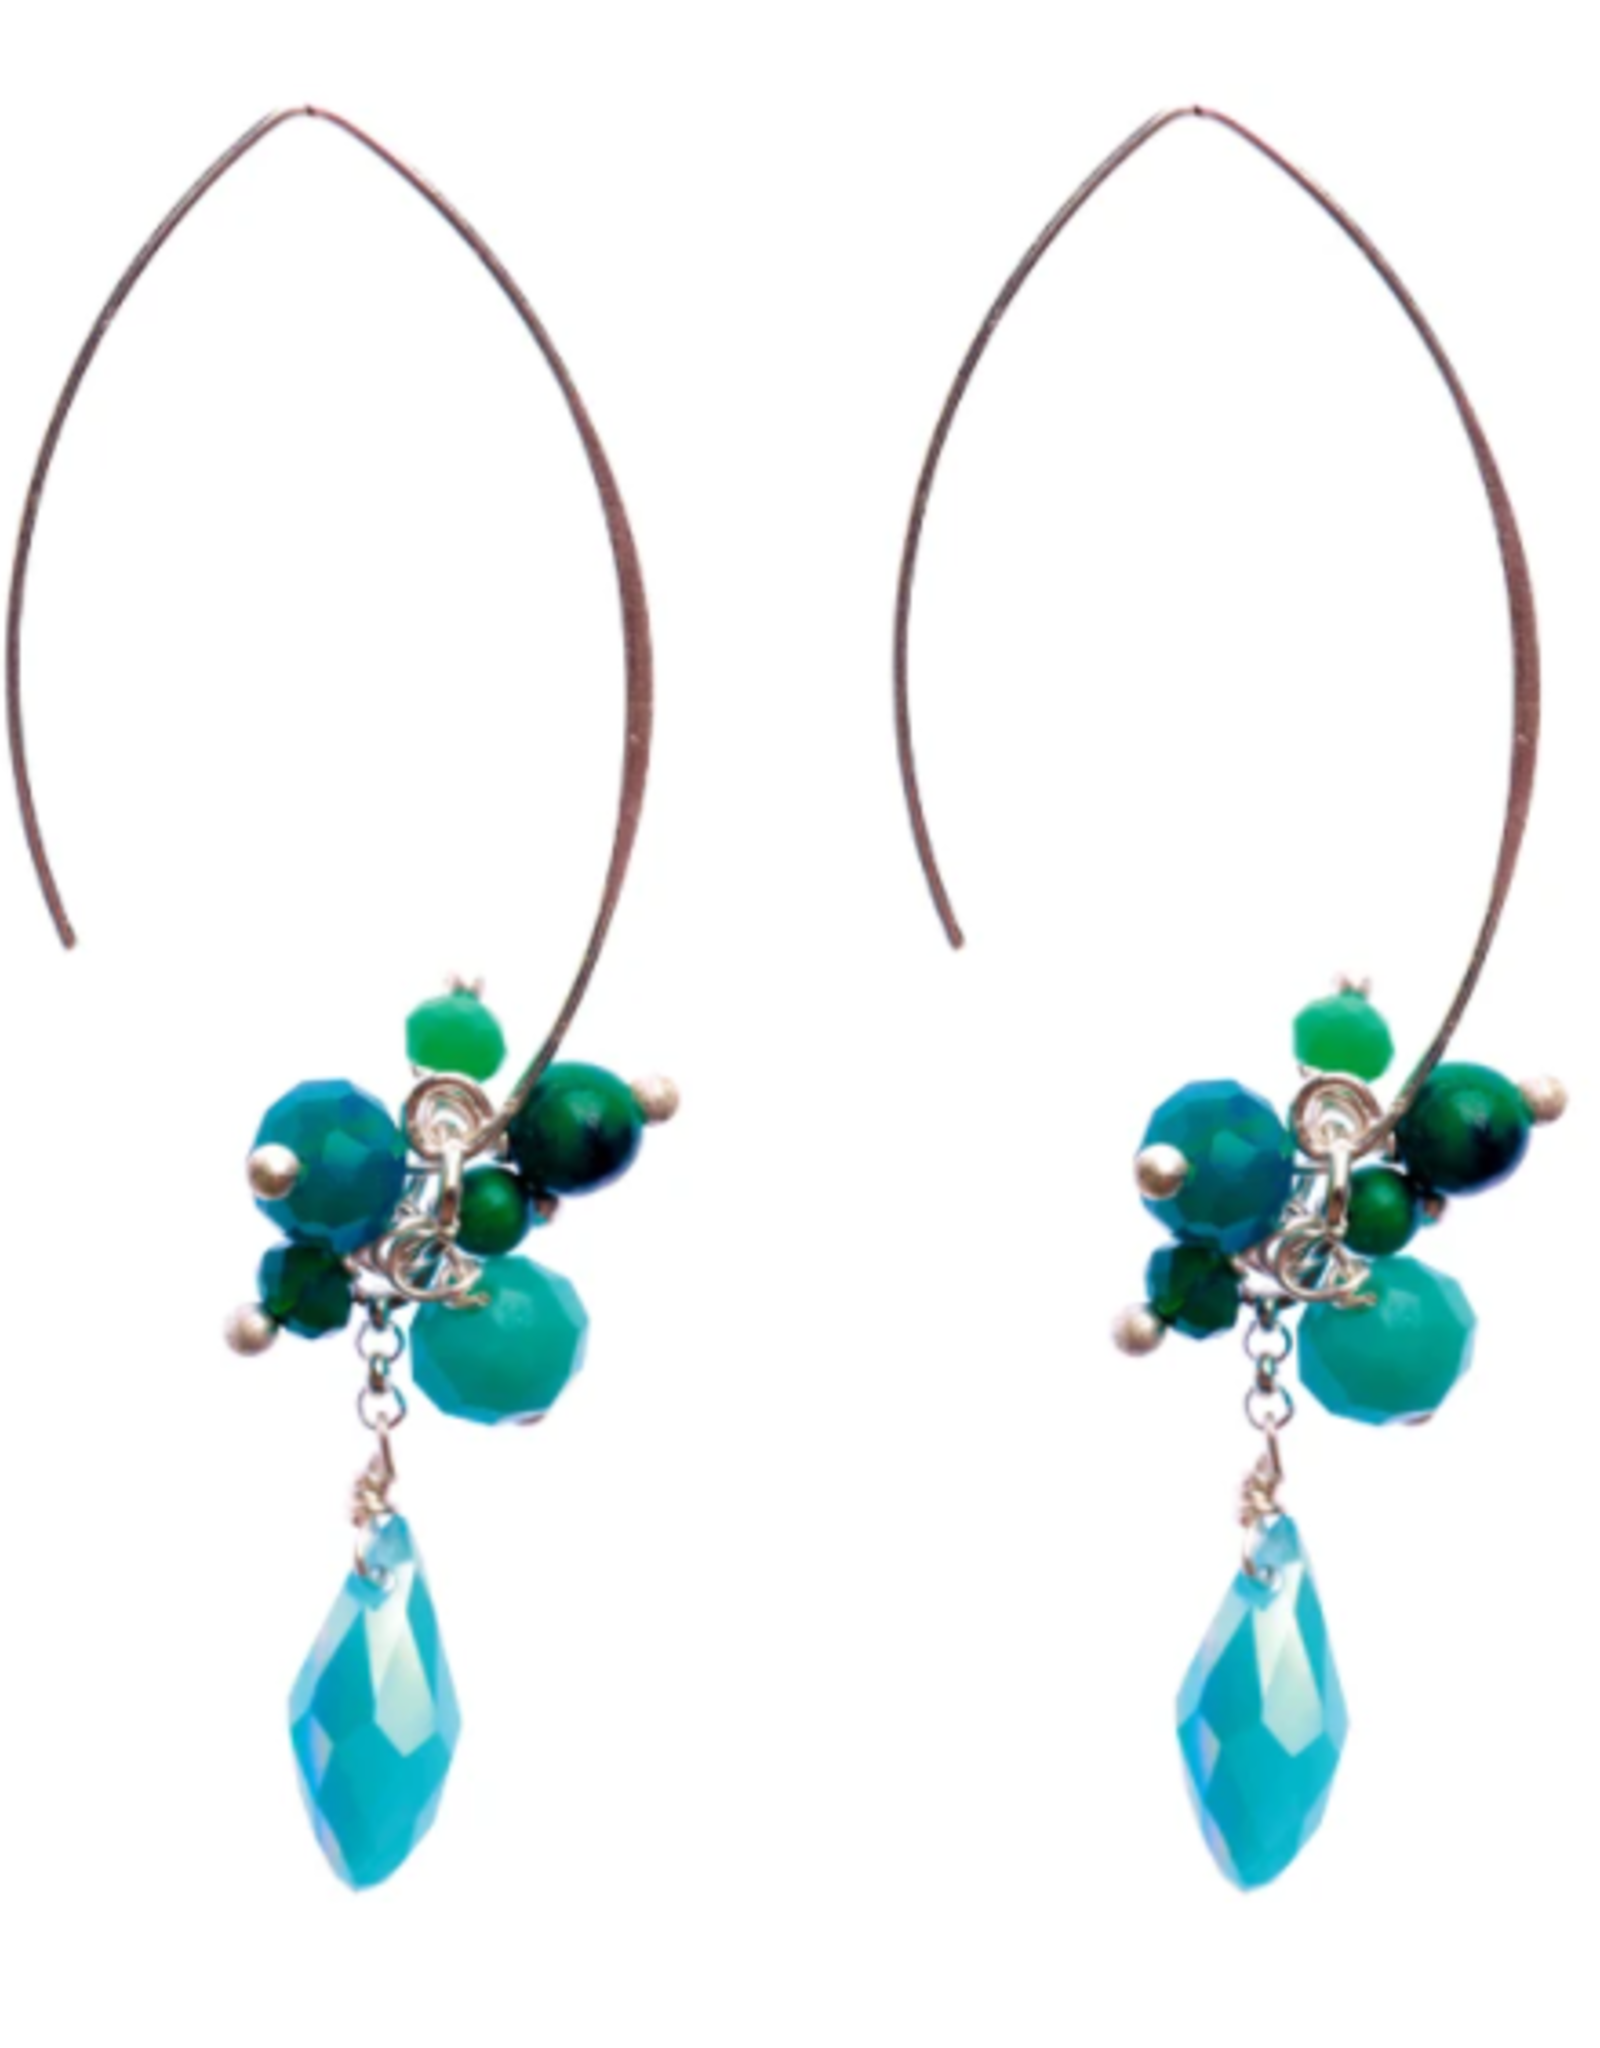 Jen Clustered Crystal Earrings, Turquoise